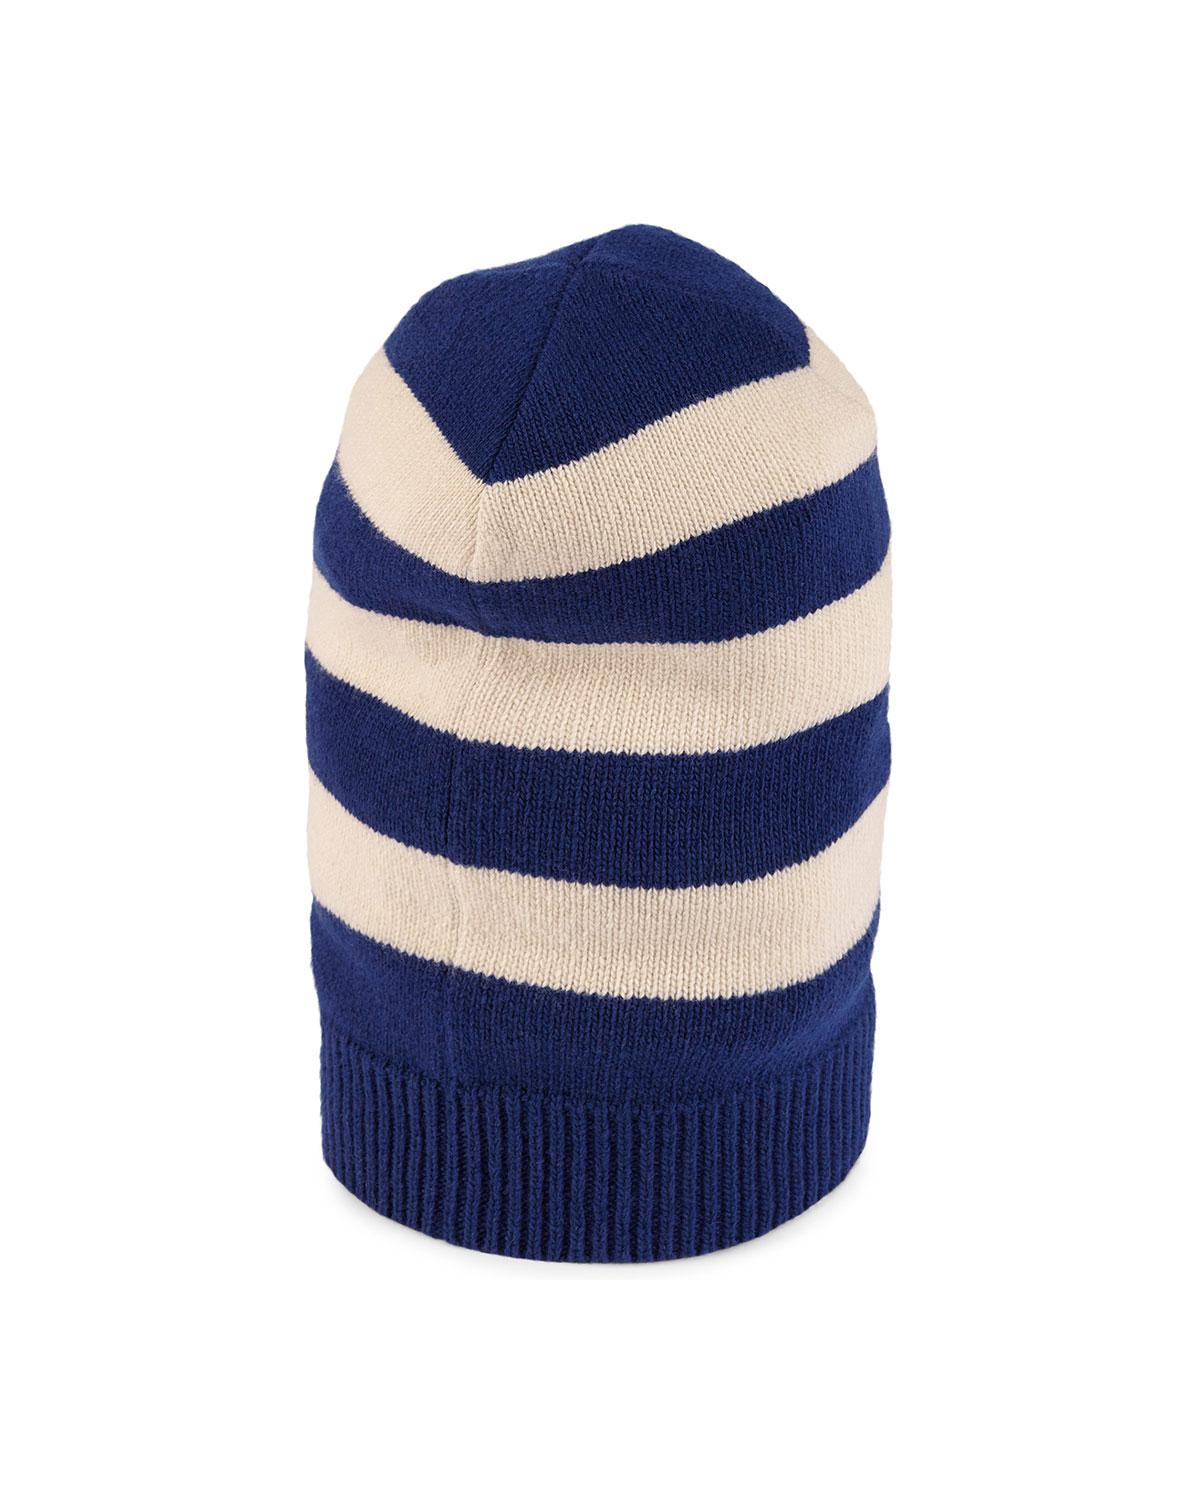 Striped wool hat - Blue Gucci yby1bY0G